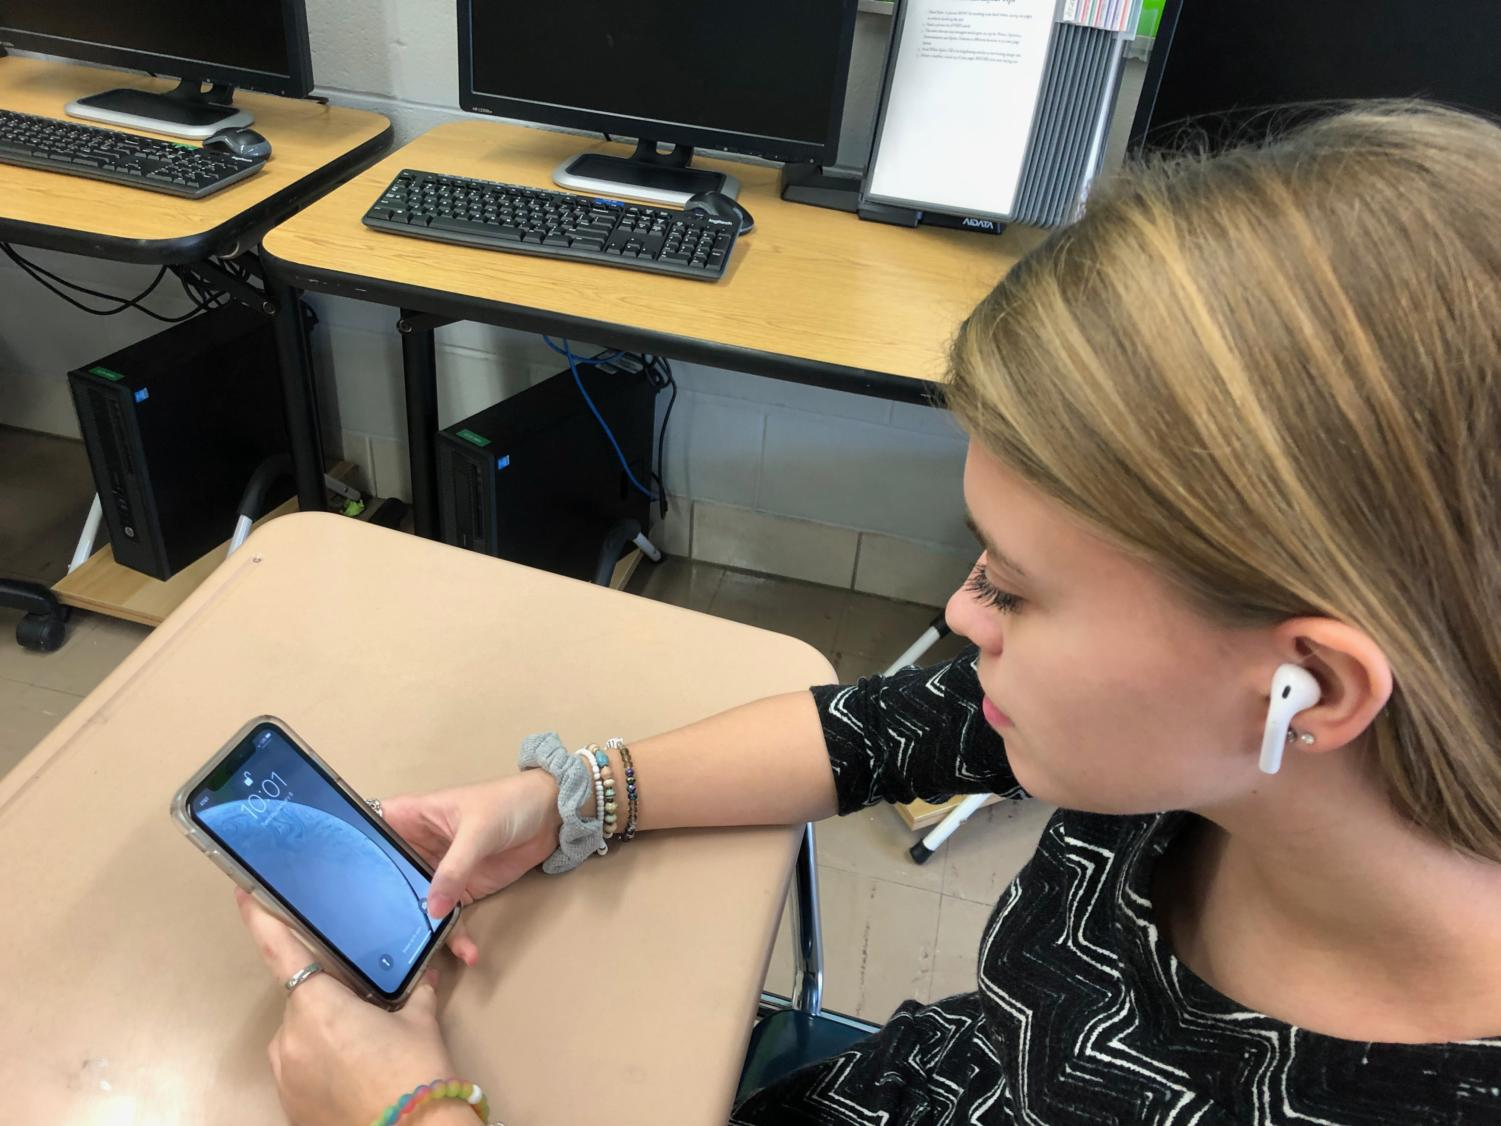 Junior Sarah Barber flexes on us with her horrendous AirPods